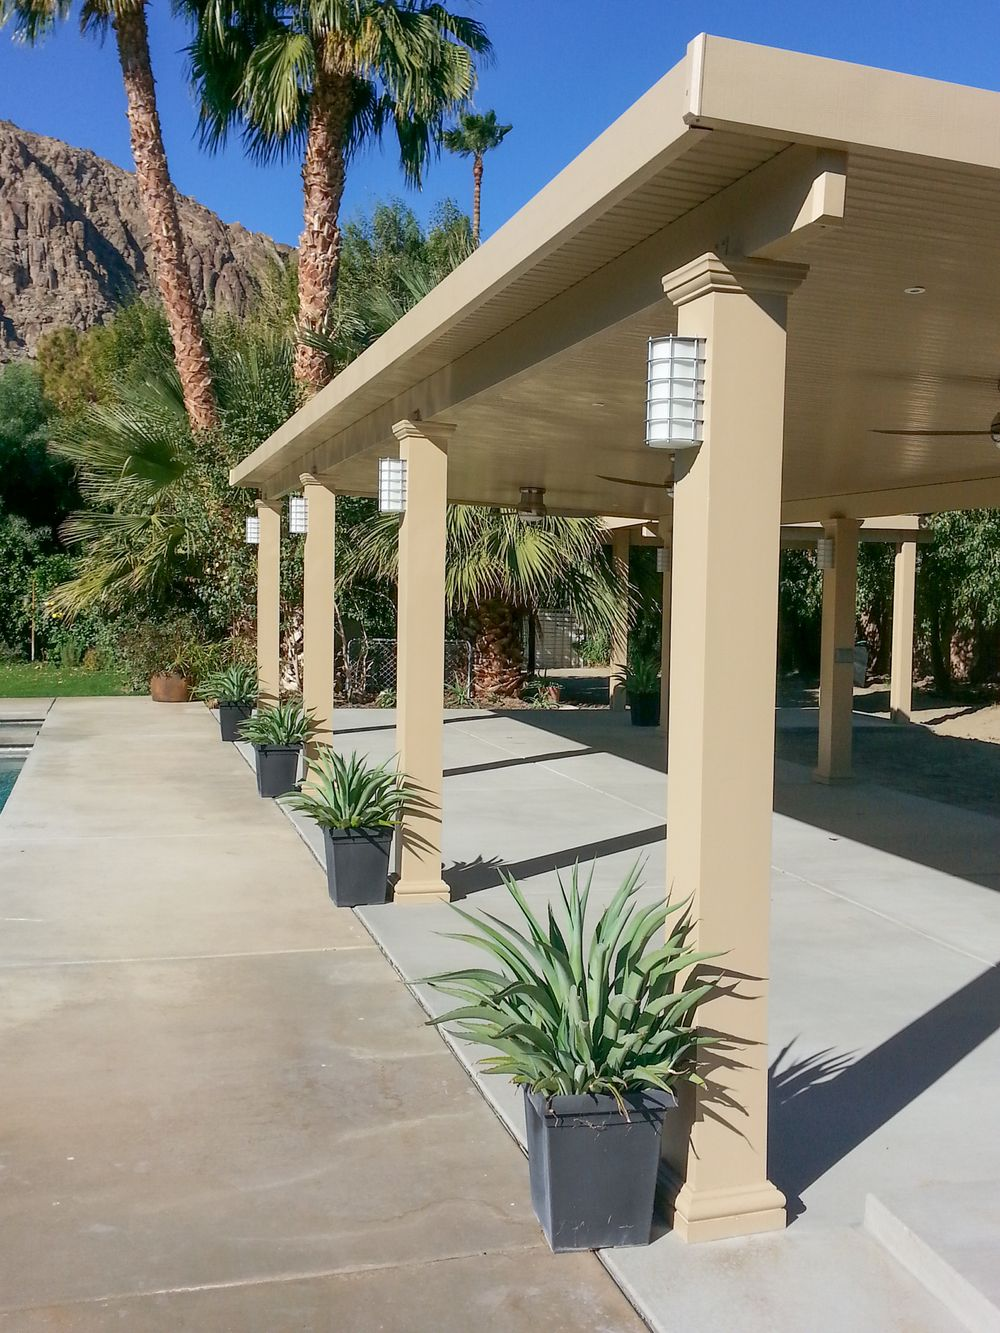 Image Result For Alumawood With Columns Covered Patio